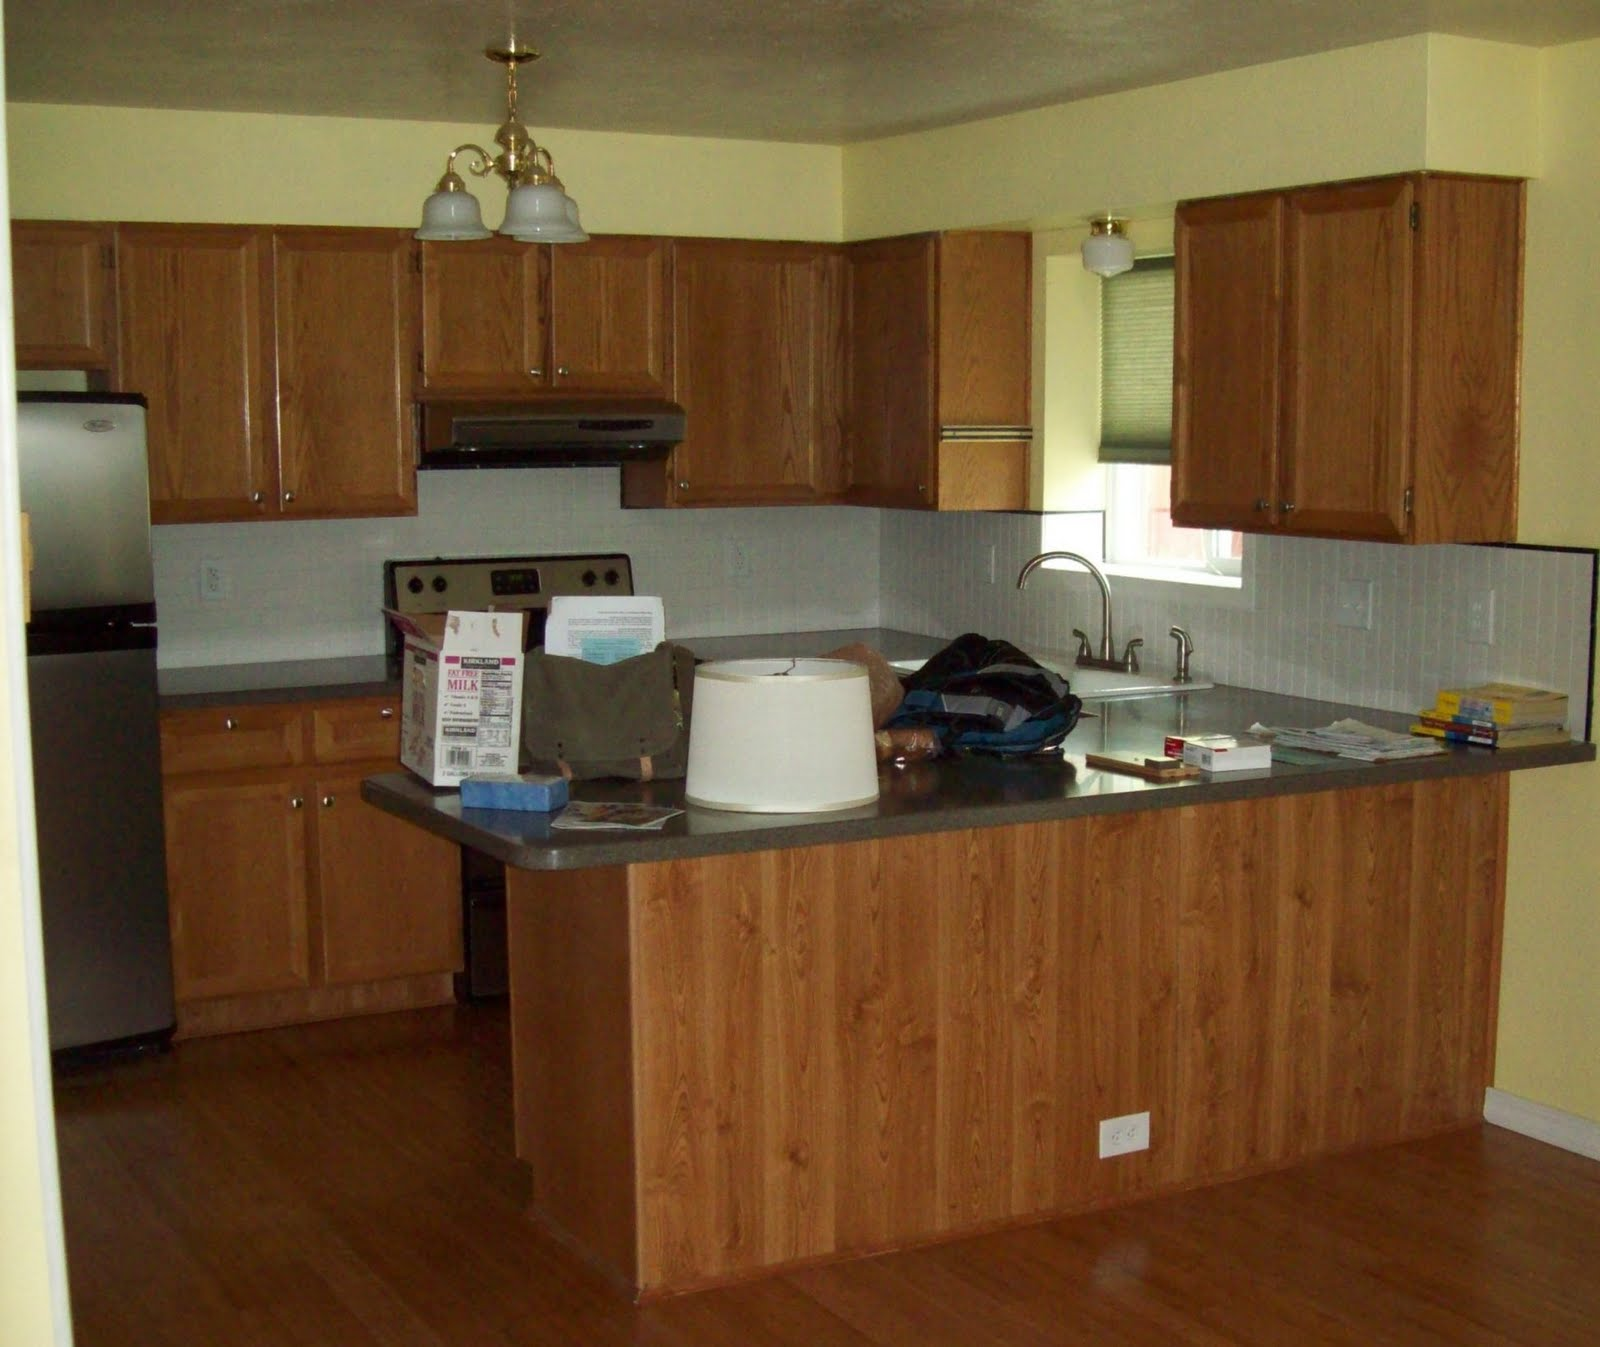 how to paint your kitchen cabinets painted kitchen cabinets How To Paint Your Kitchen Cabinets